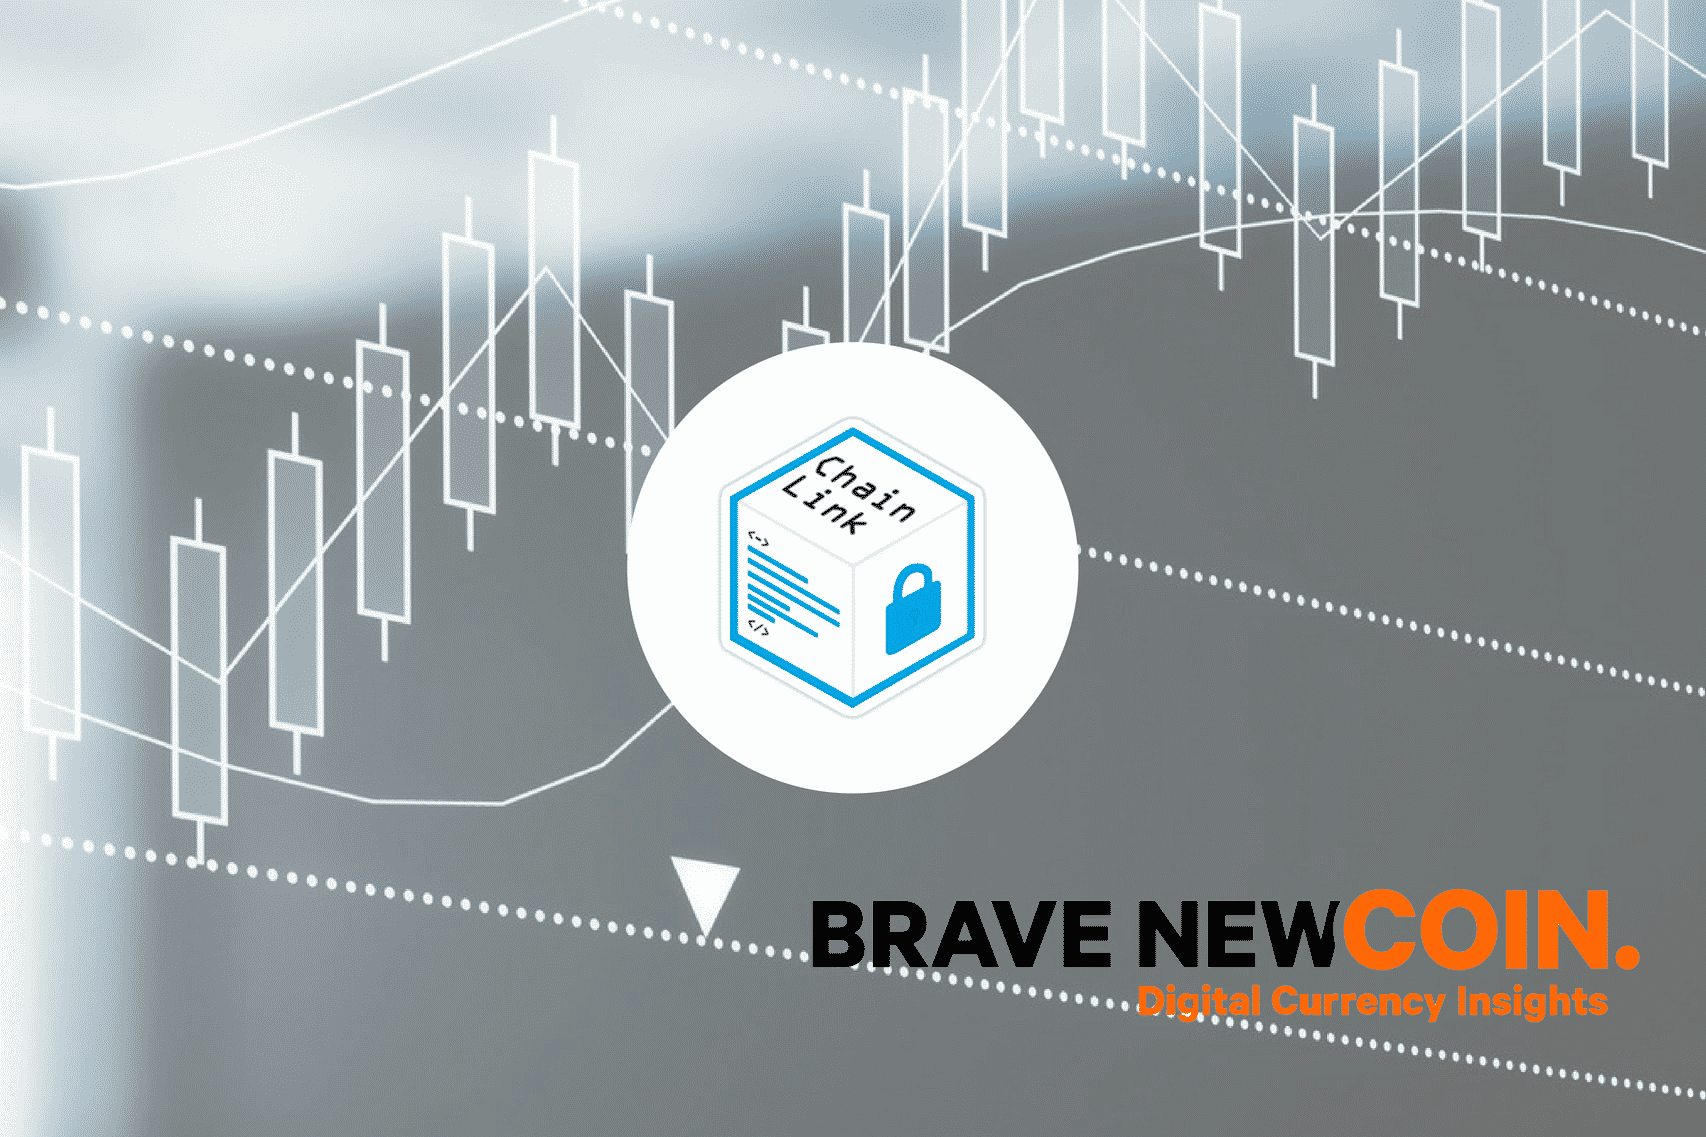 Blockchain and Brave new coin partners with Chainlink - Crypto While